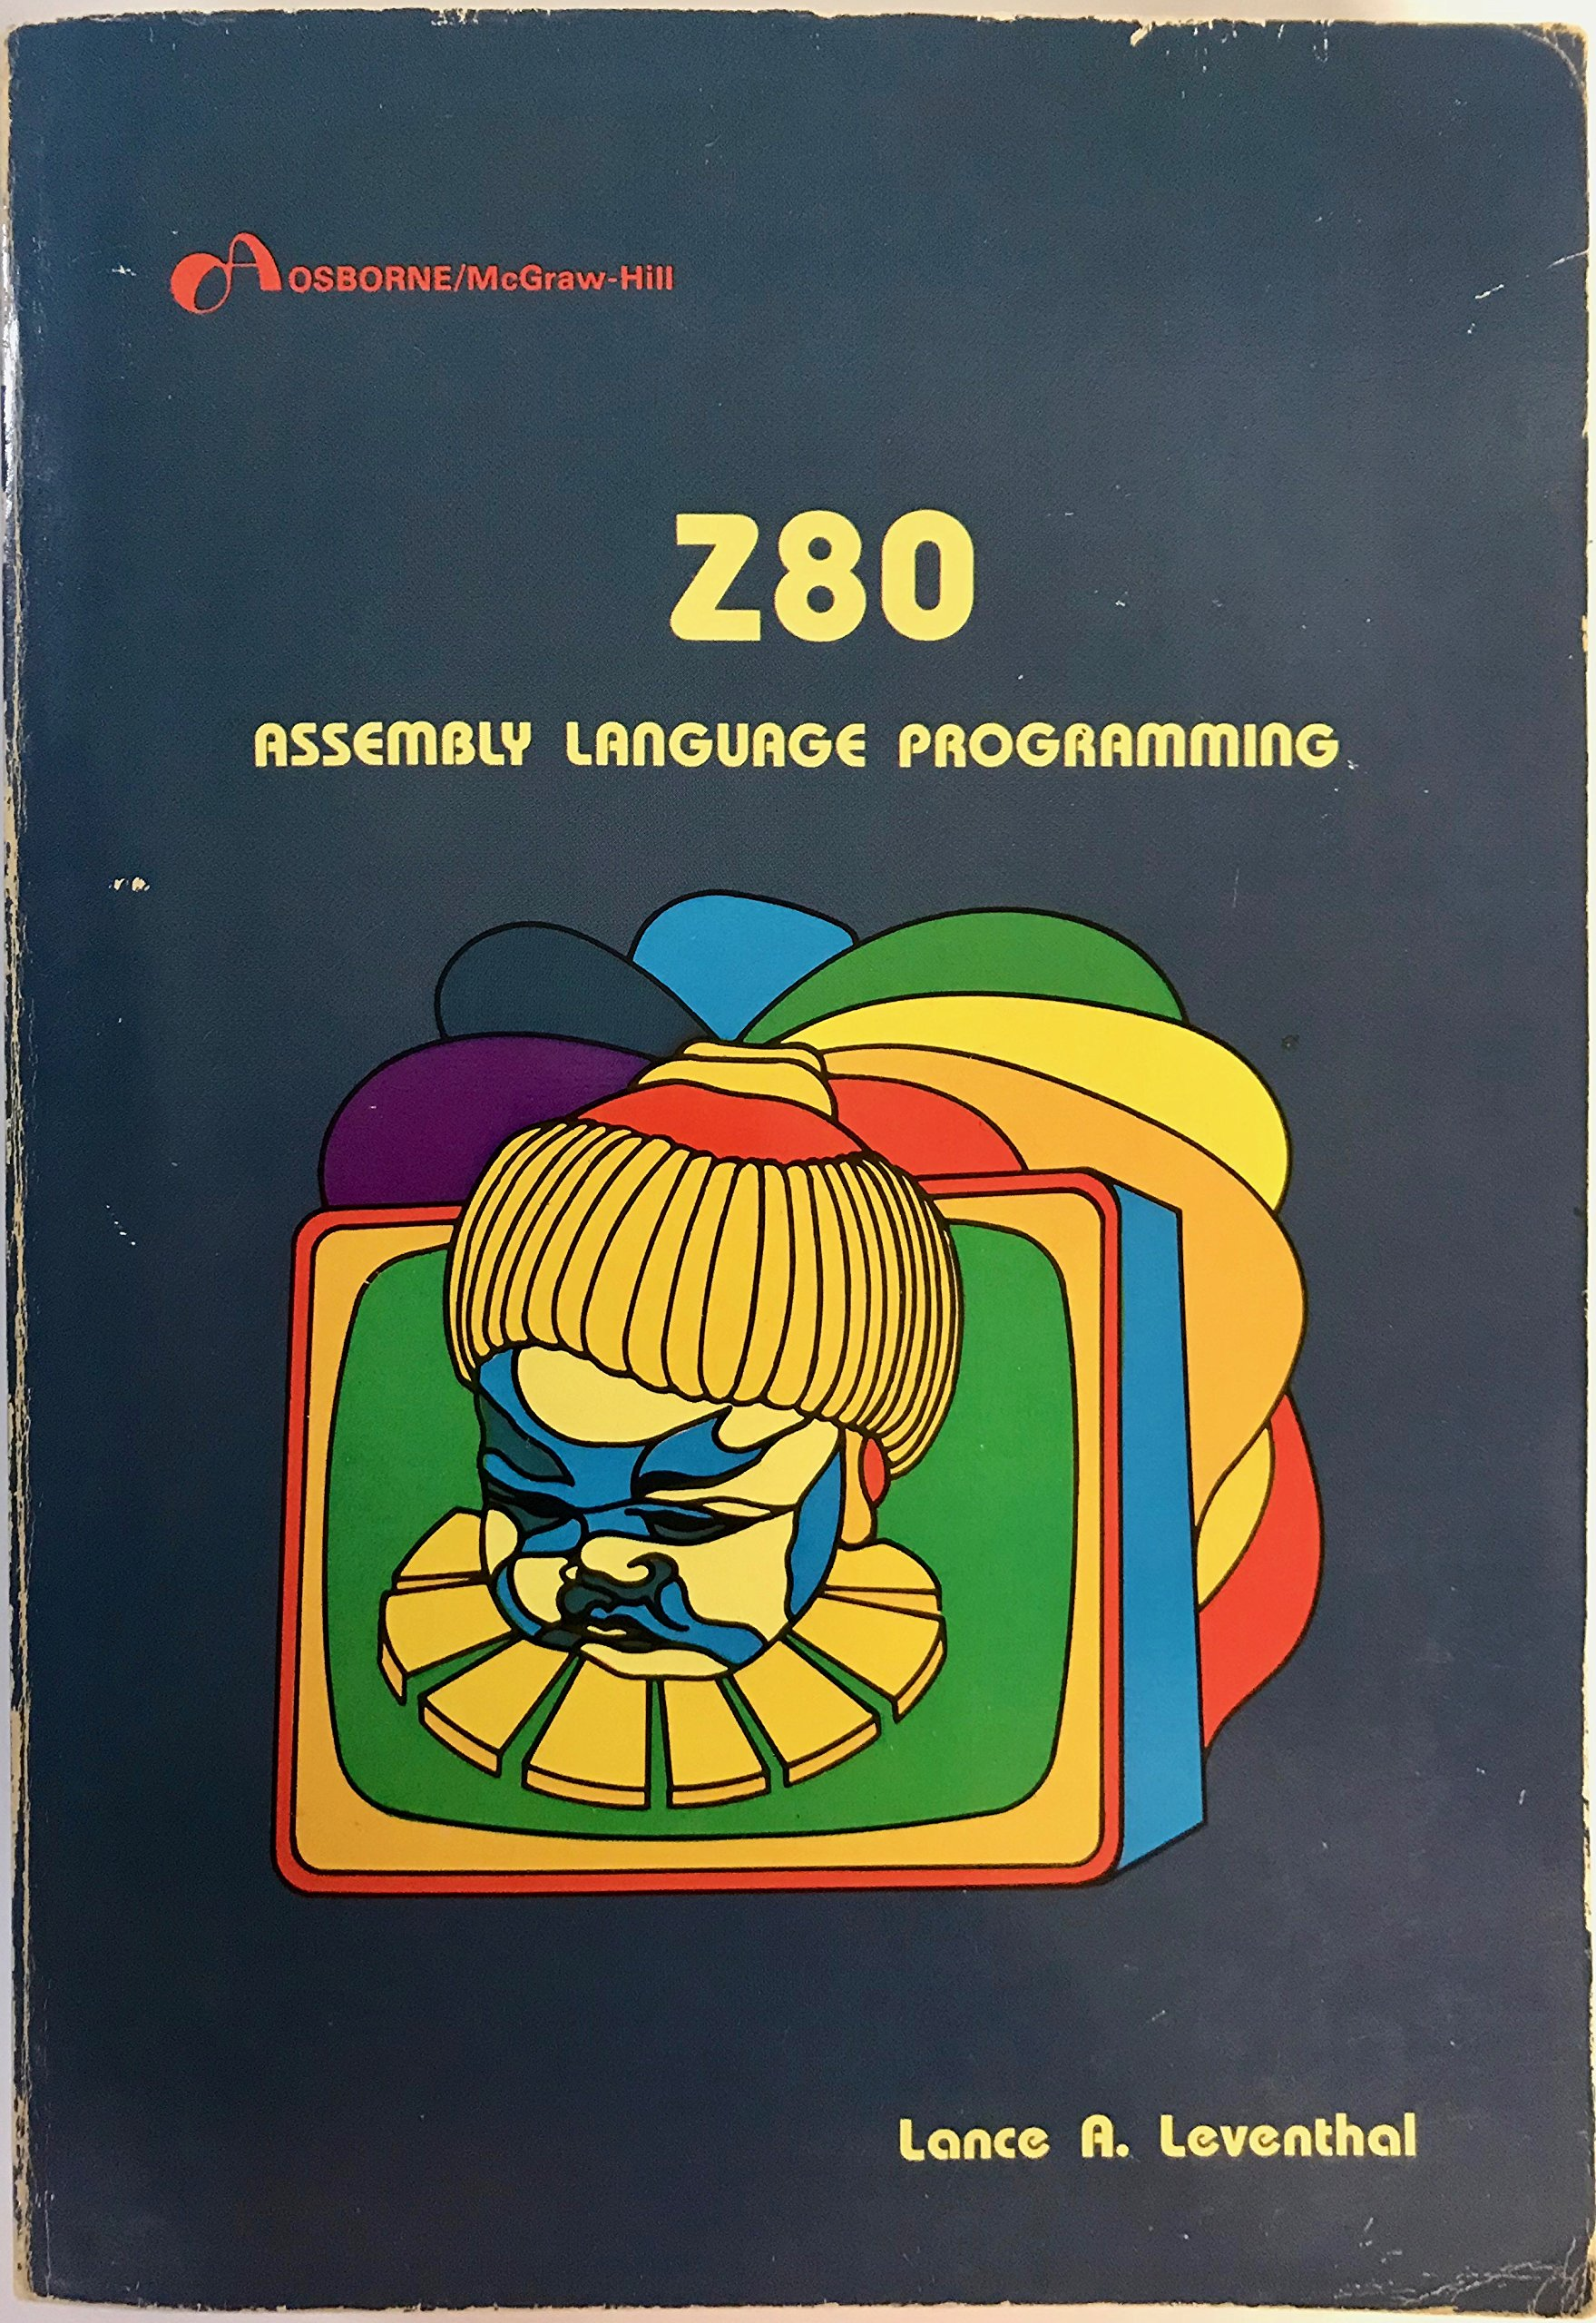 Z80 Assembly Language Programming: Lance A Leventhal: 9780931988219